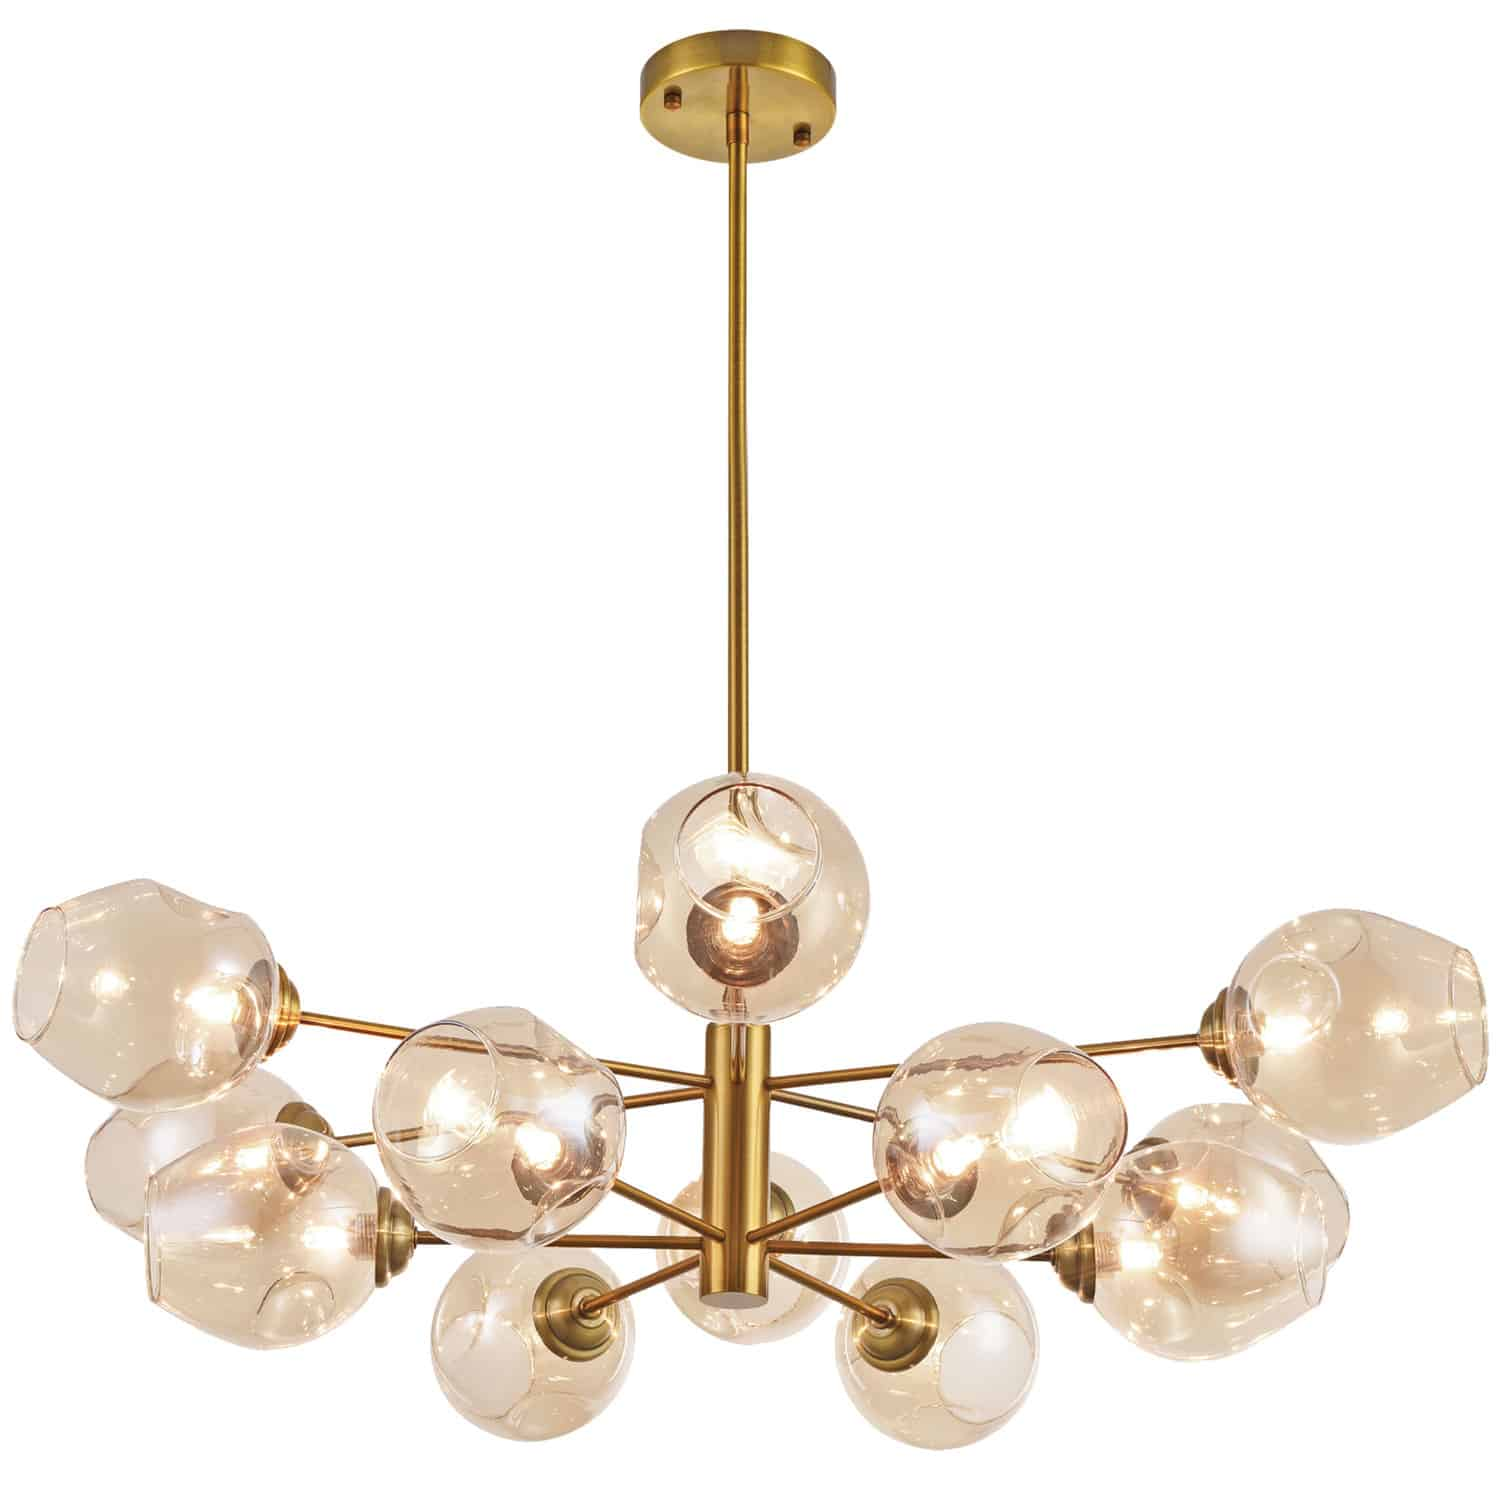 12 Light Pendant, Vintage Bronze Finish with Champagne Glass